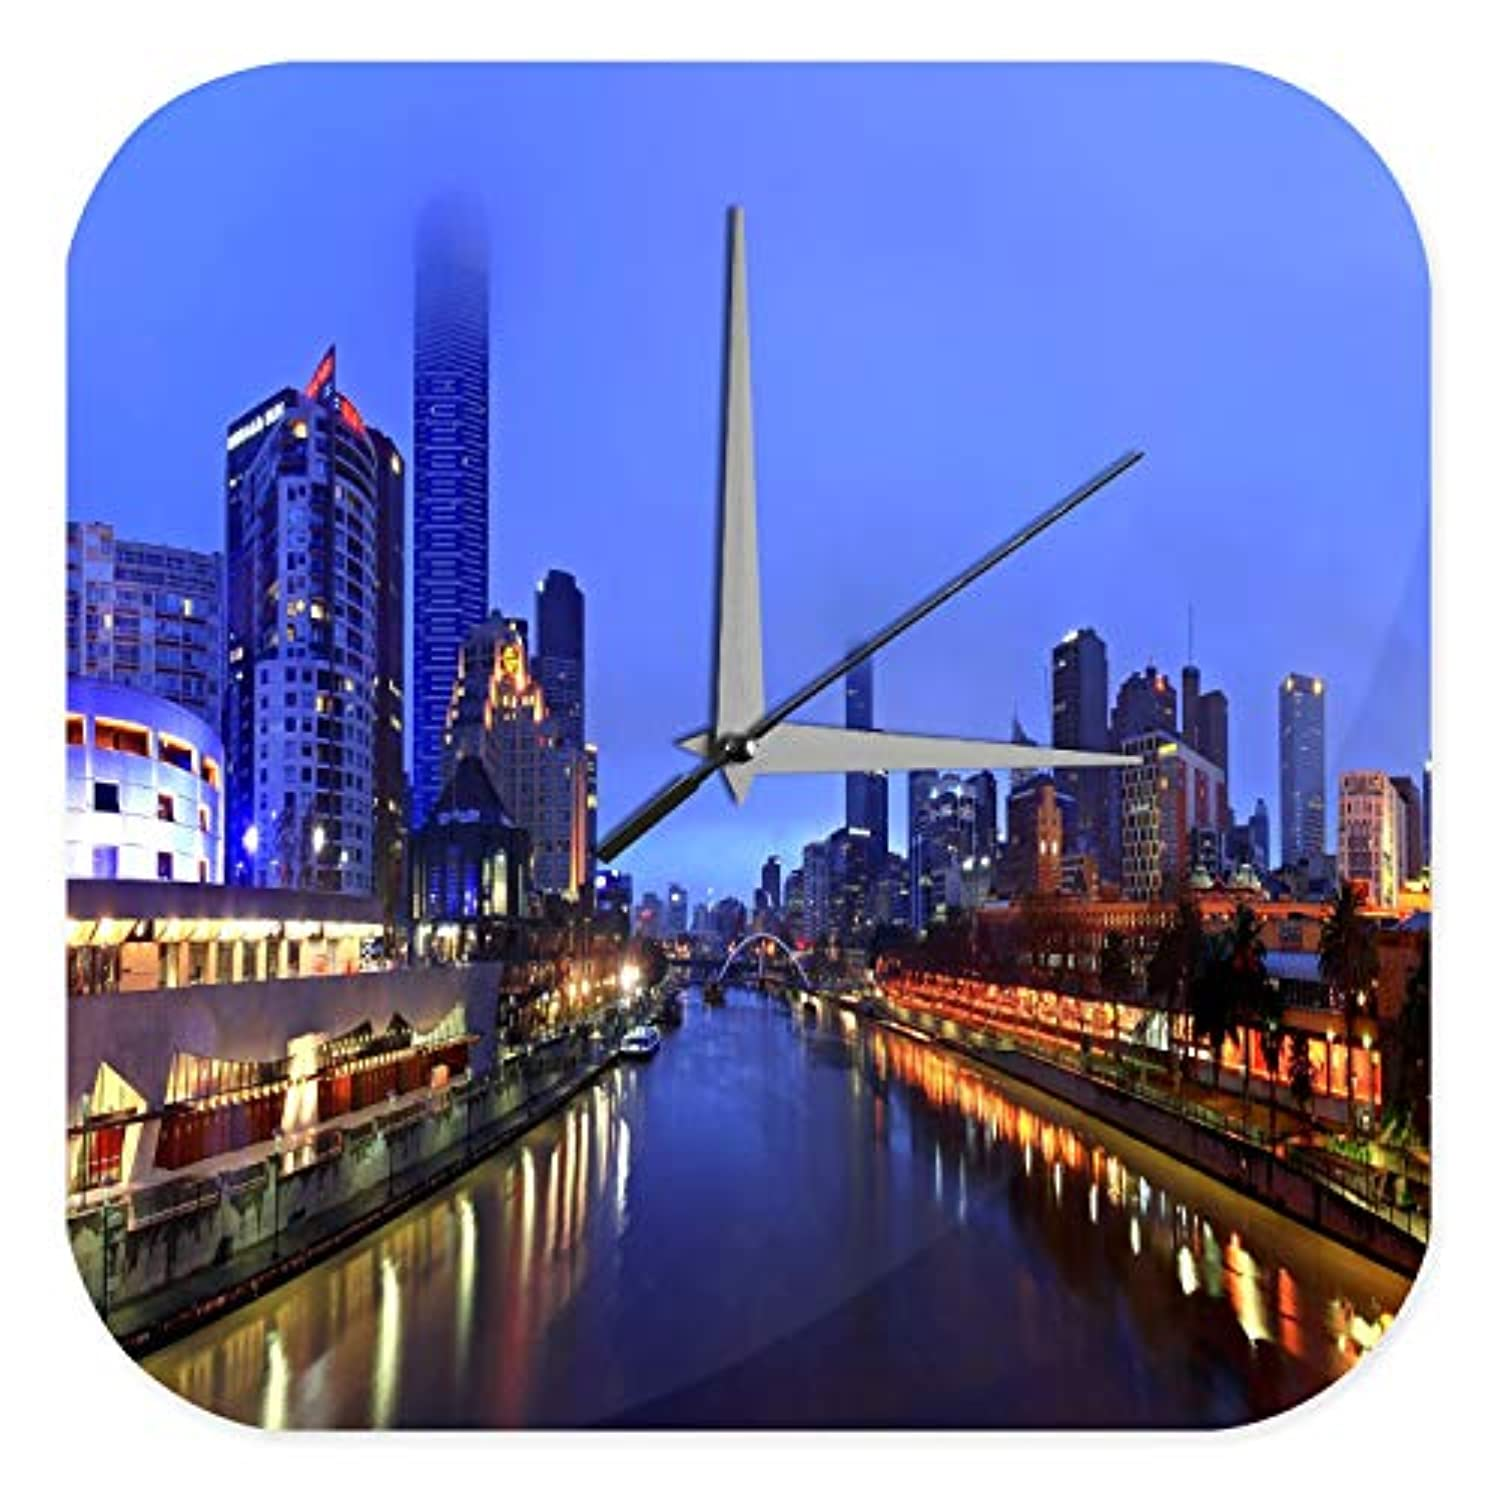 wall clock Picture Skyline Night Lights Harmony Vintage Decoration 10x10